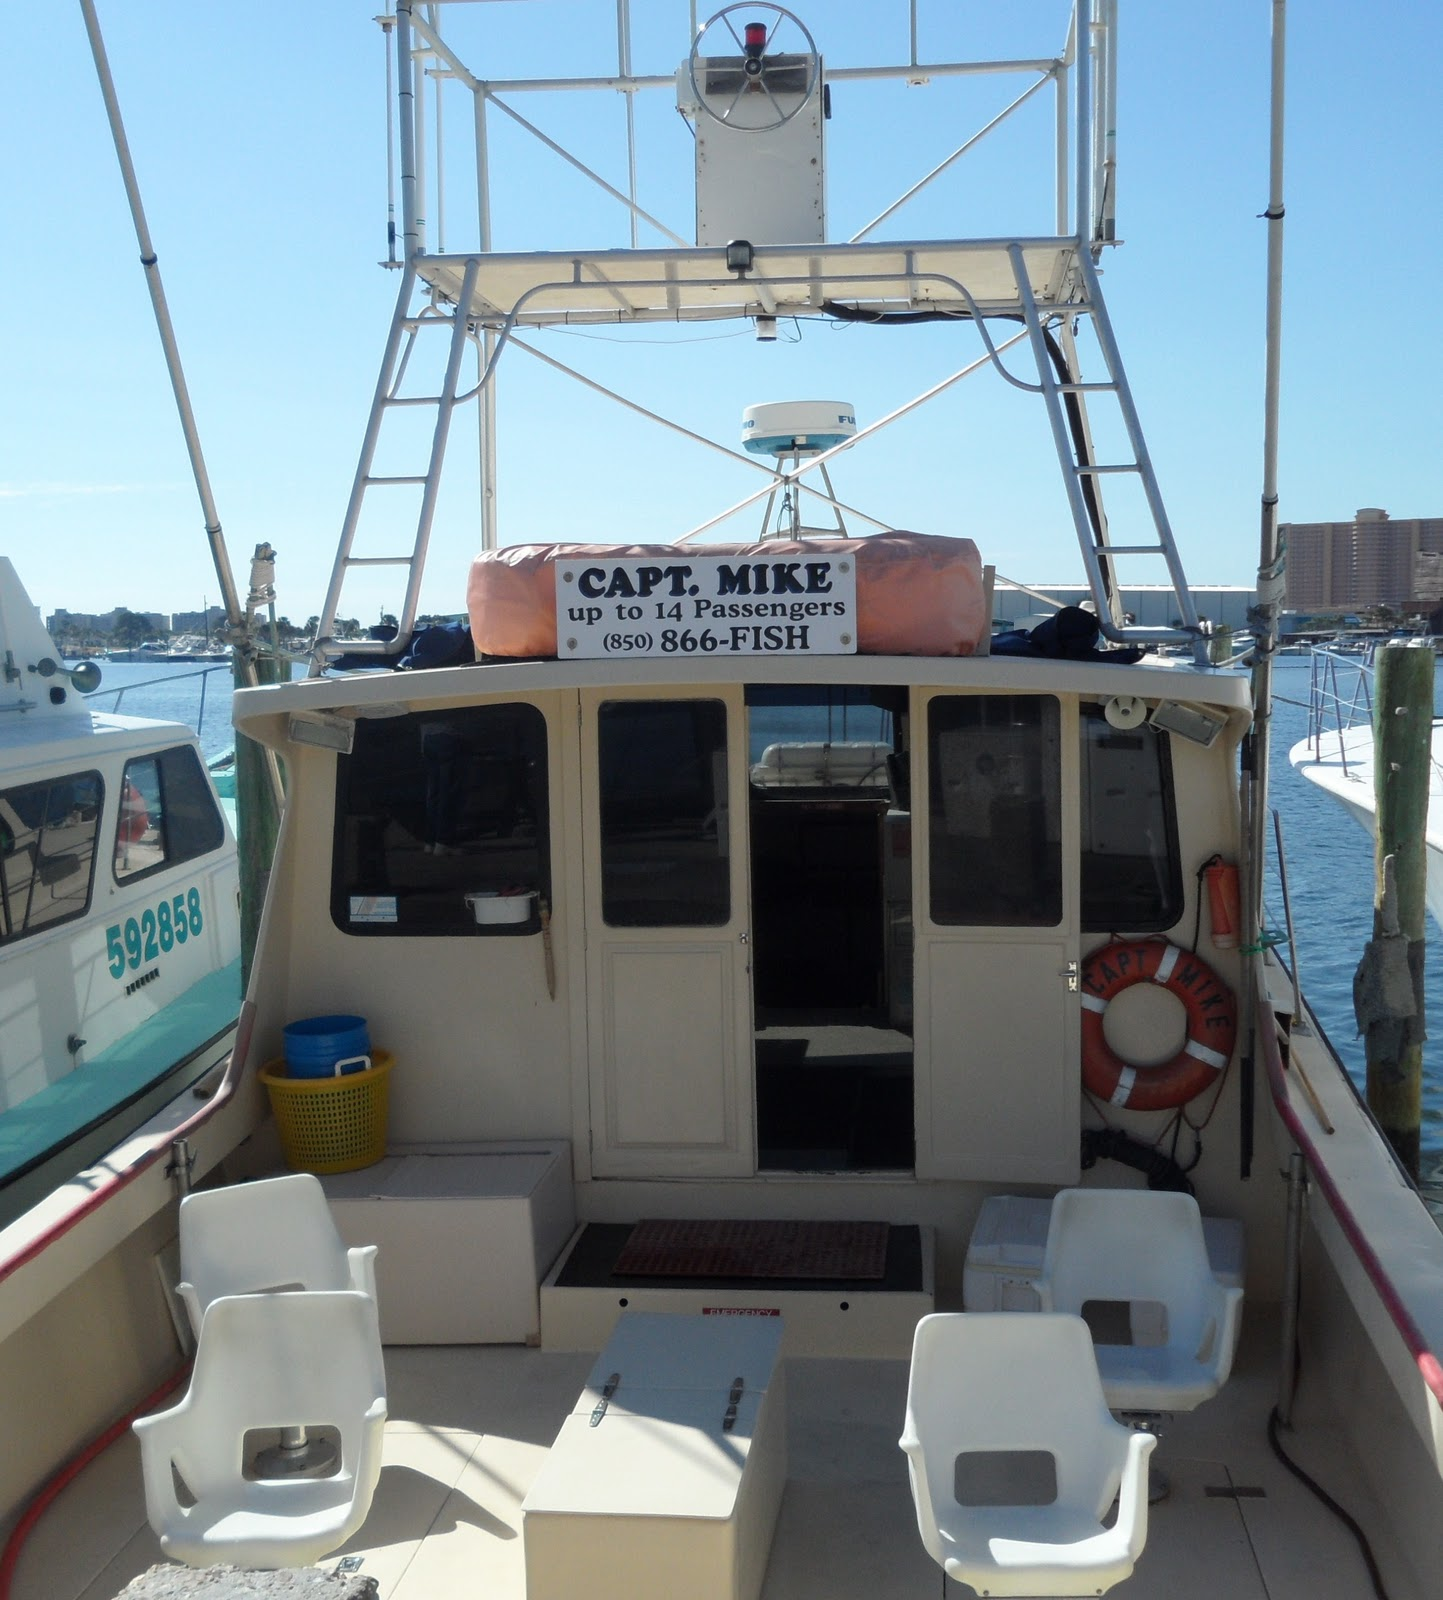 R and r travels charter fishing panama city florida for Panama city fishing charters